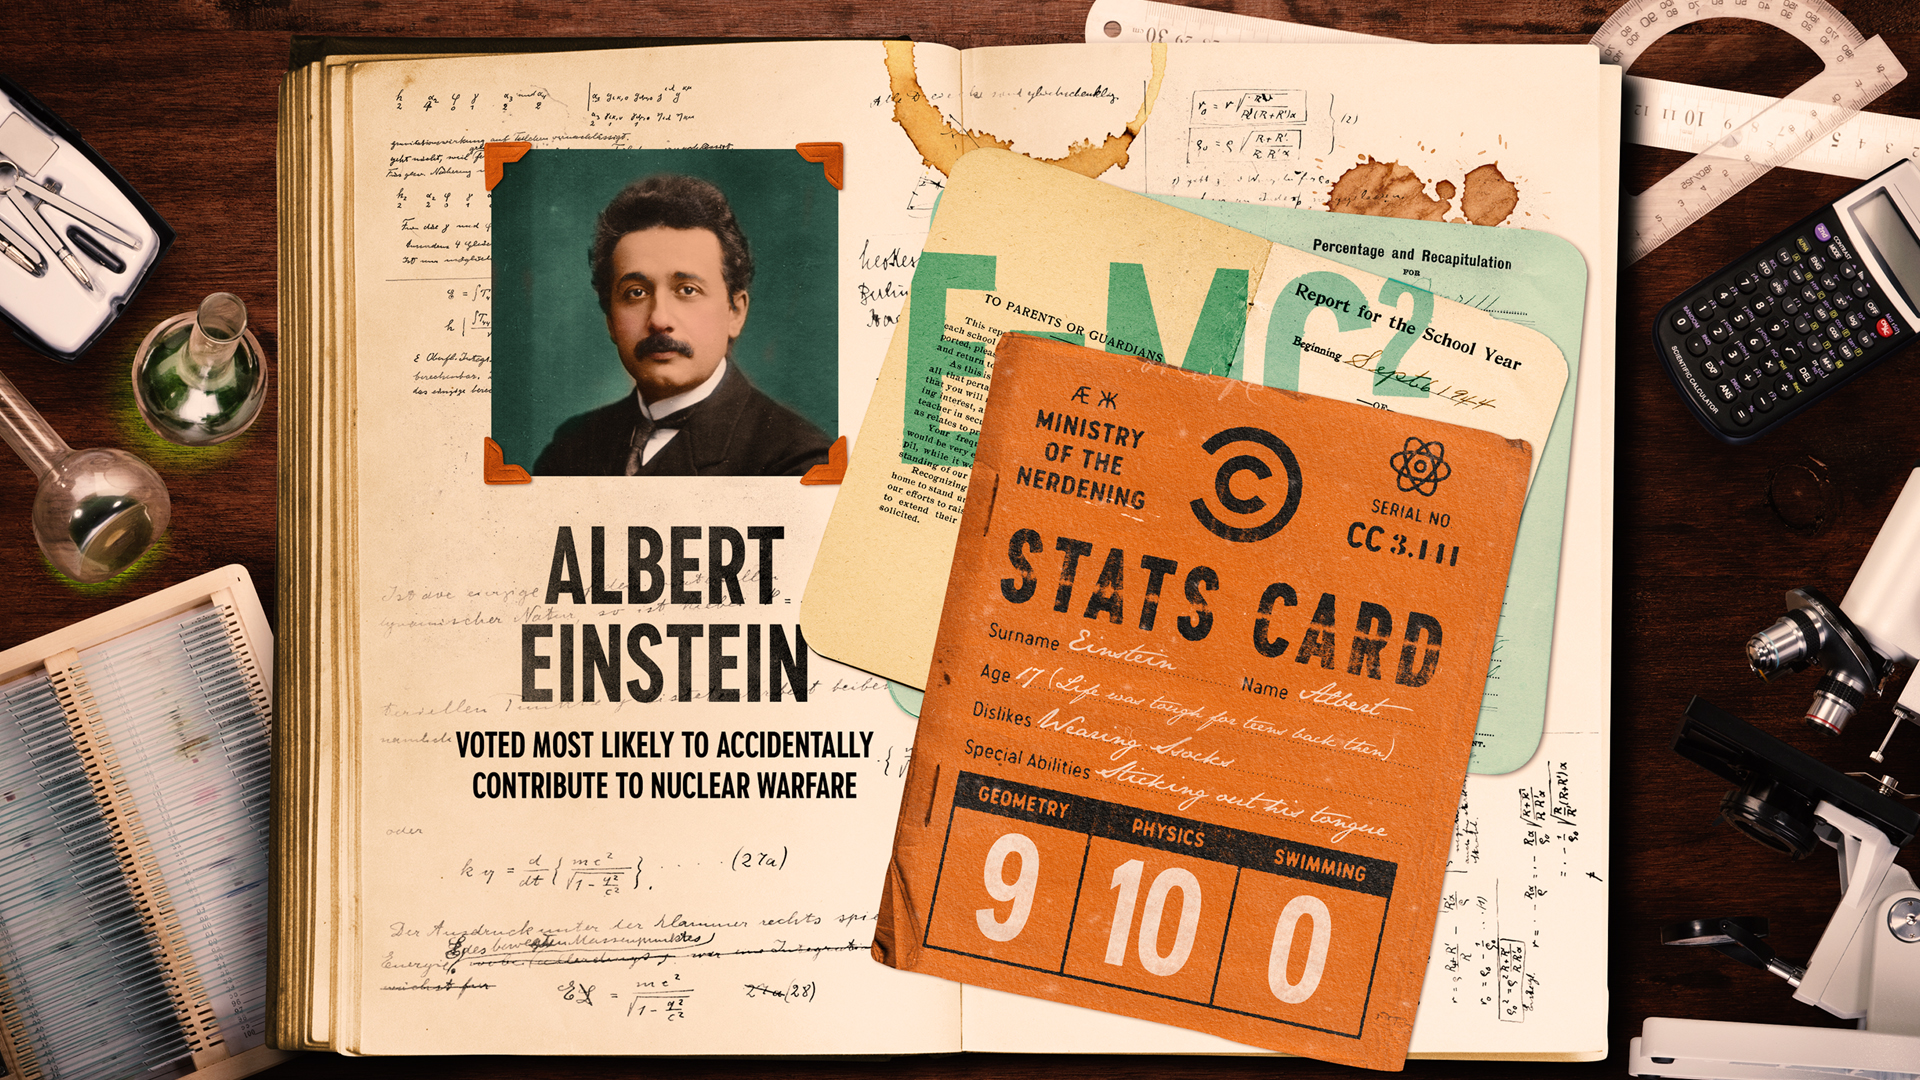 Photo of Albert Einstein in a year book for Comedy Central